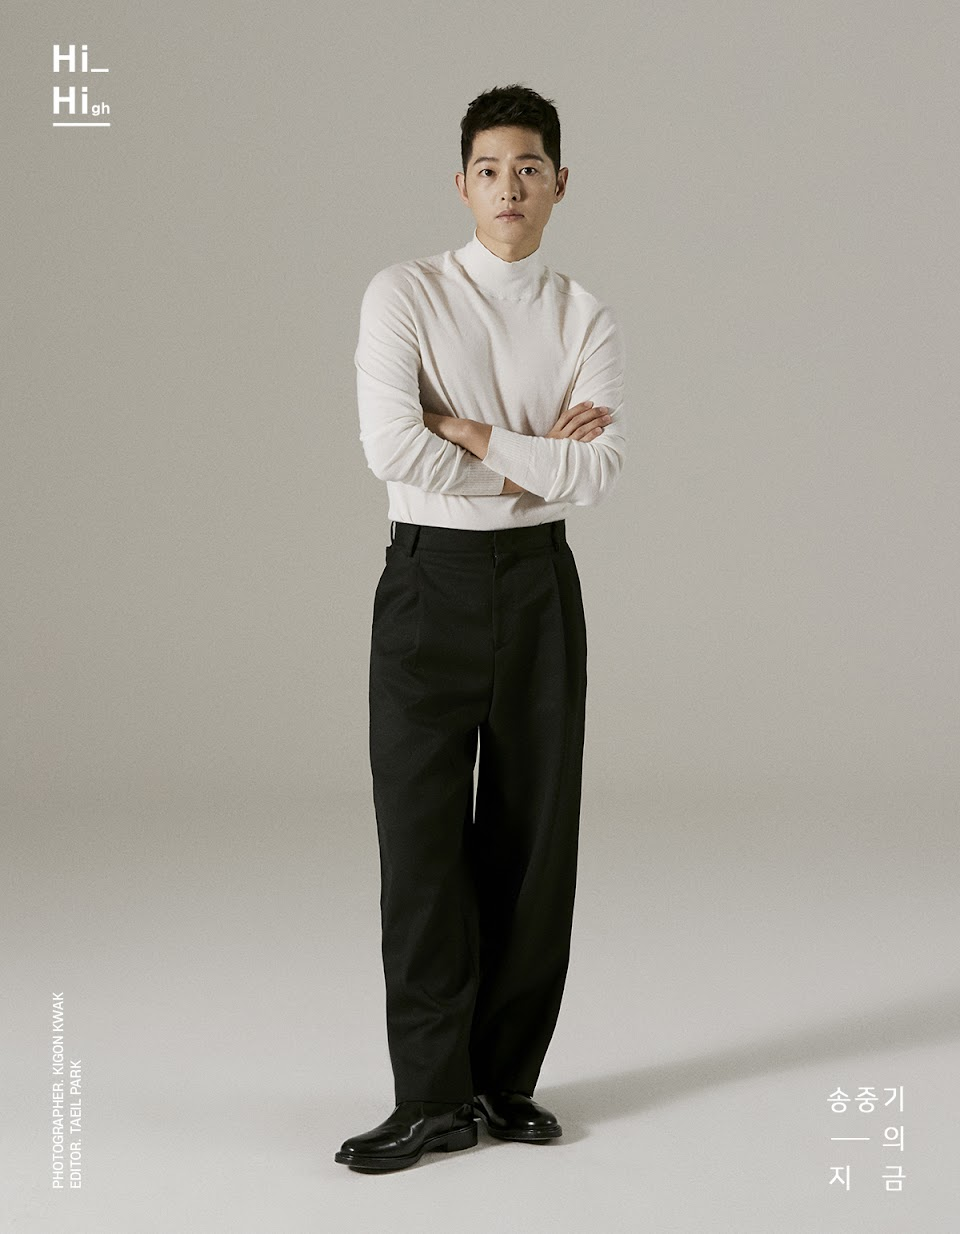 song joong ki interview 2